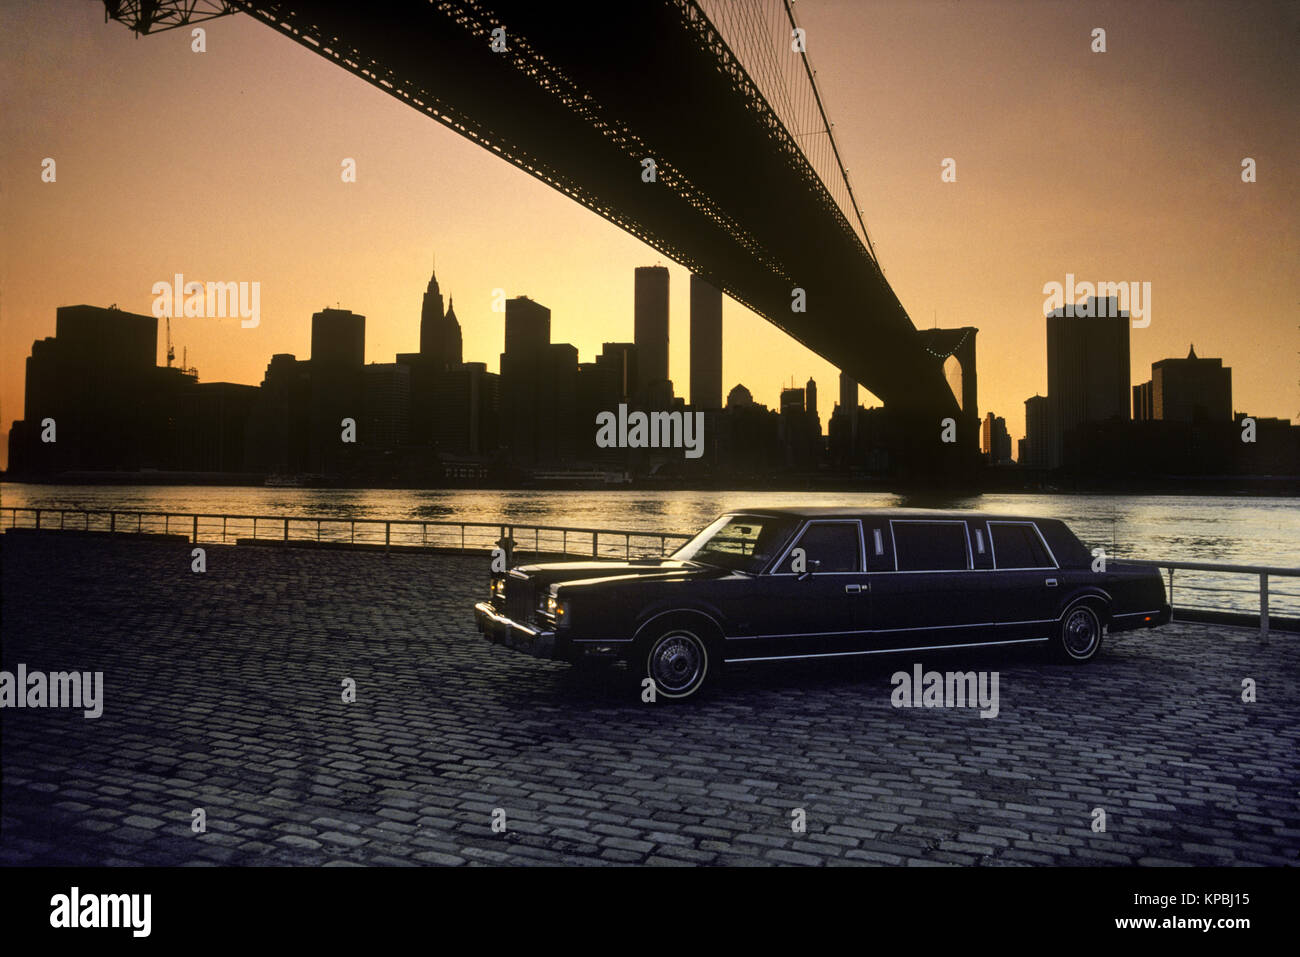 Lincoln Town Car Stockfotos Bilder Alamy 1973 1987 Historische Stretch Limo Ford Motor Co 1985 Brooklyn Bridge